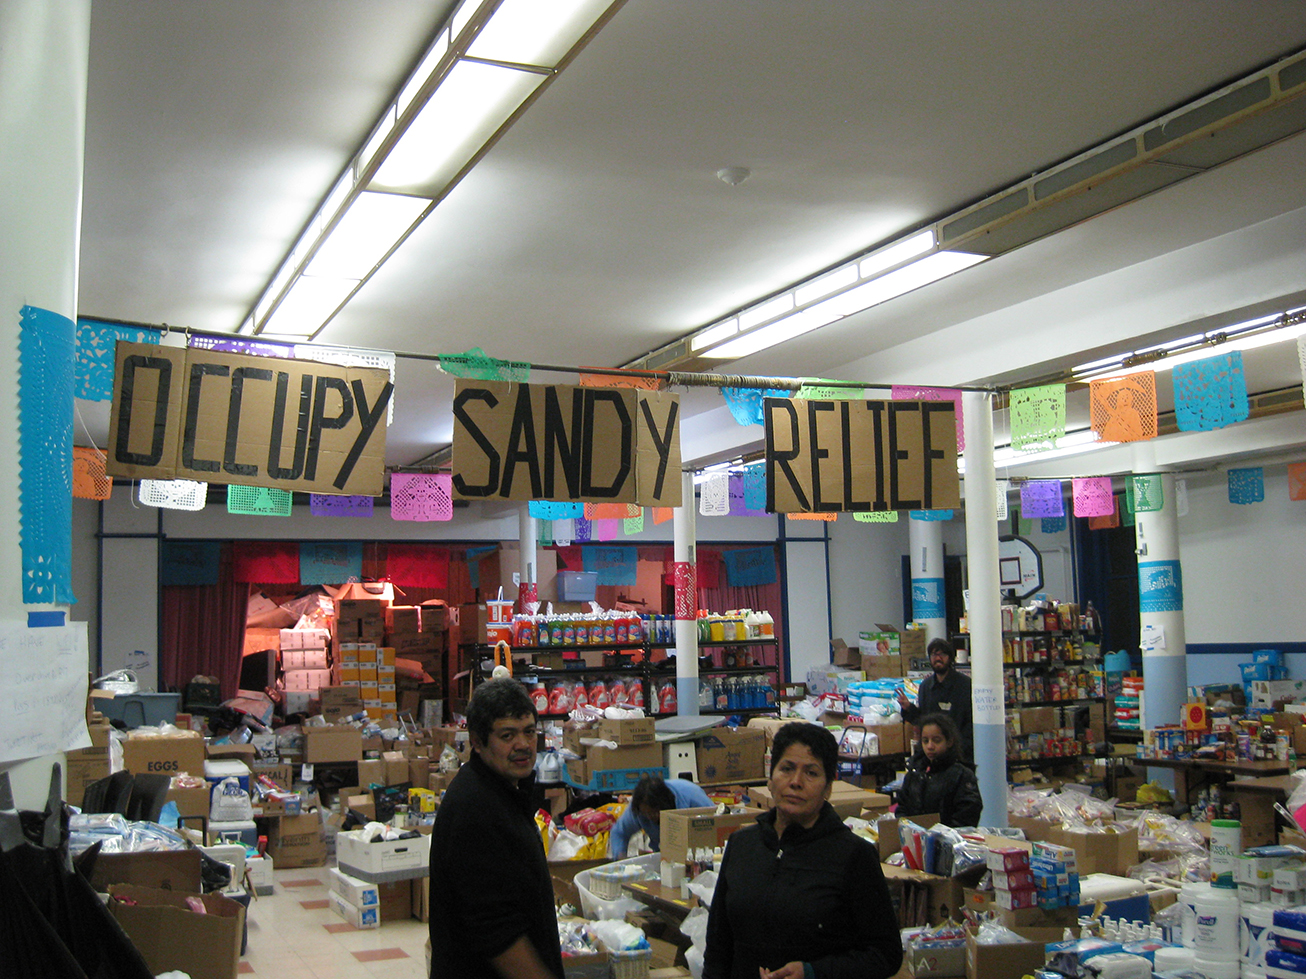 pSt.-Jacobi-Church-Occupy-Sandy-distribution-center-Brooklyn.-Flickroccupy617p